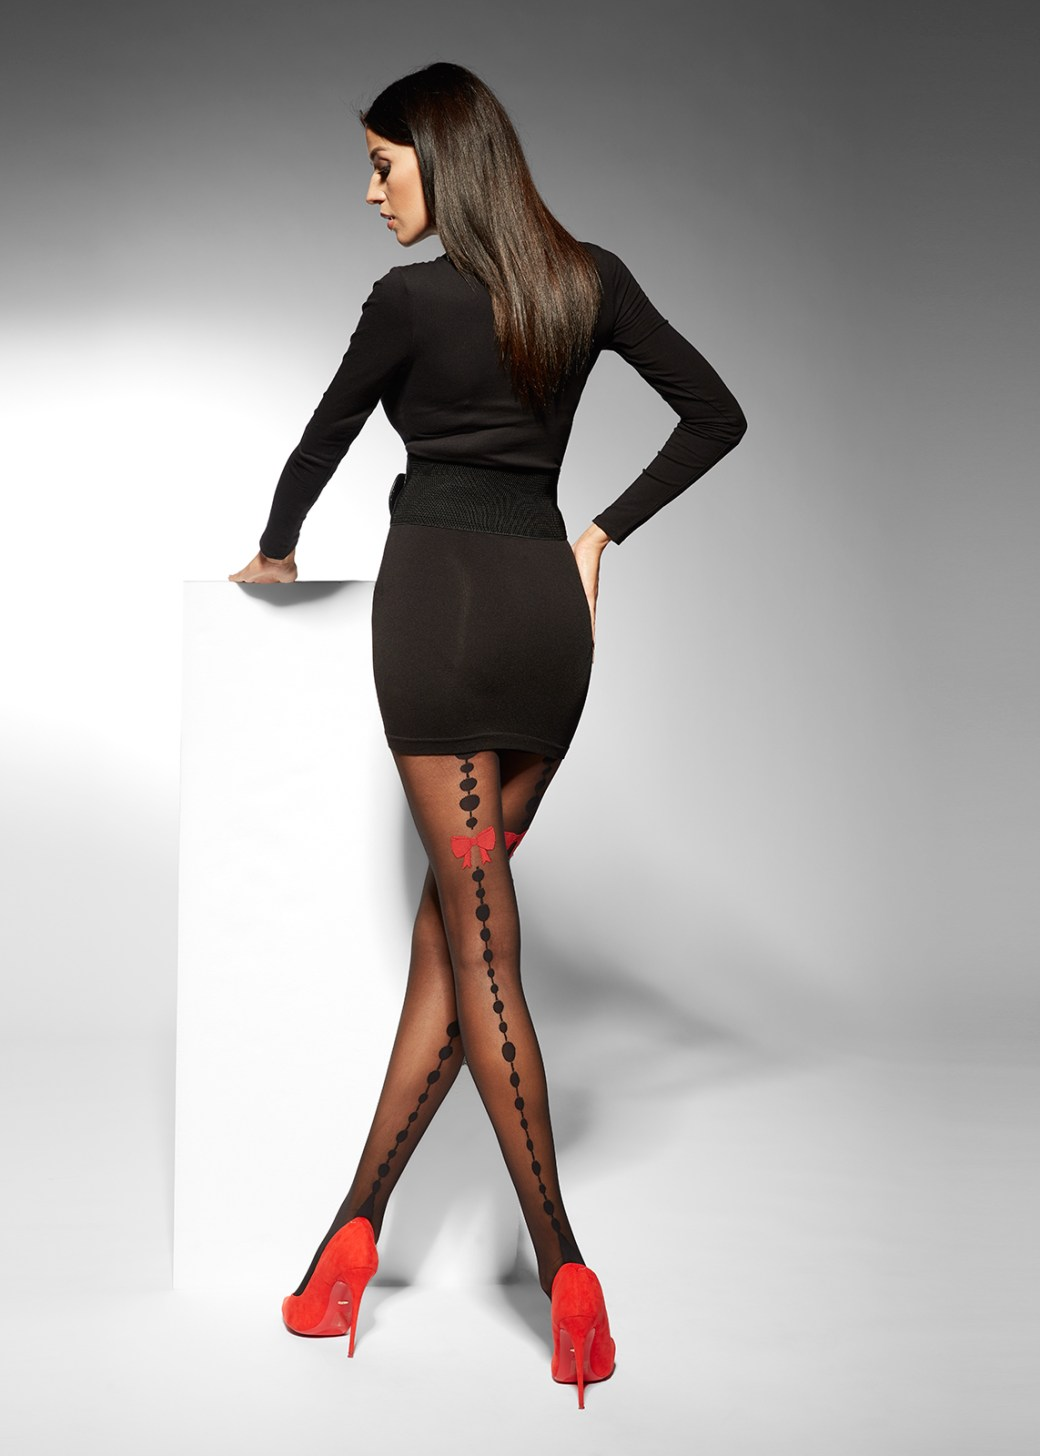 Adrian Brand Lidia Patterned Tights